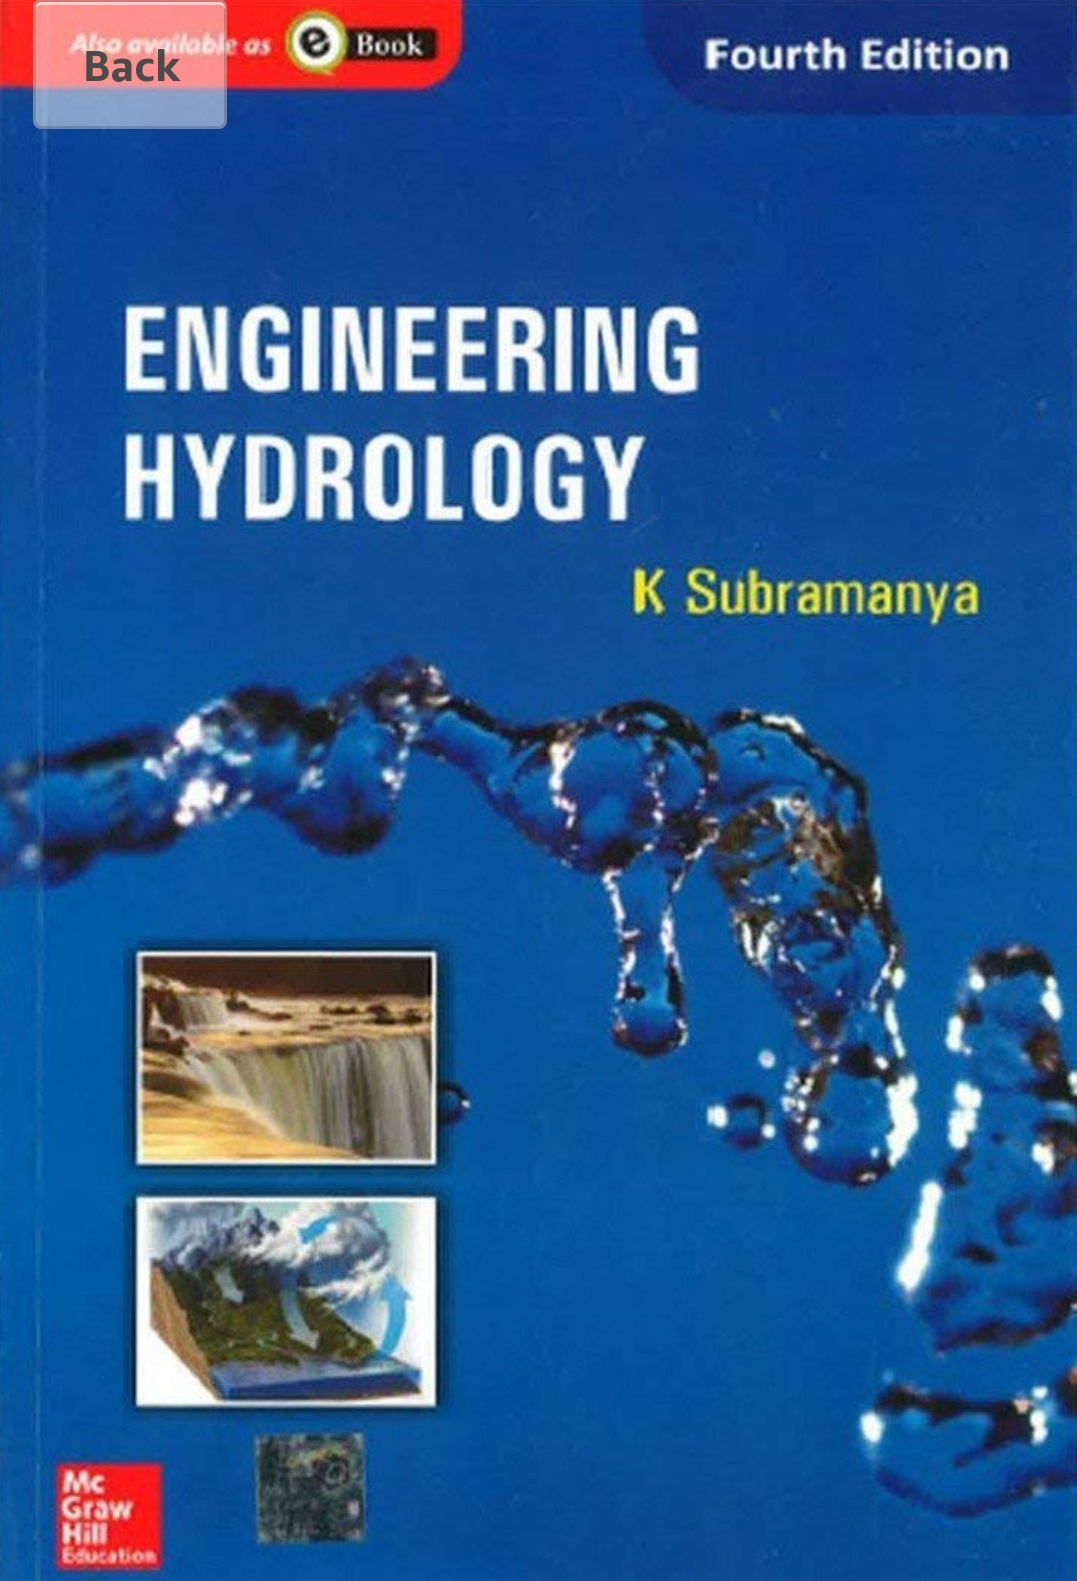 Engineering Hydrology And Its Solutions E Books Pdf Free Download Panchayati Raj Engineers